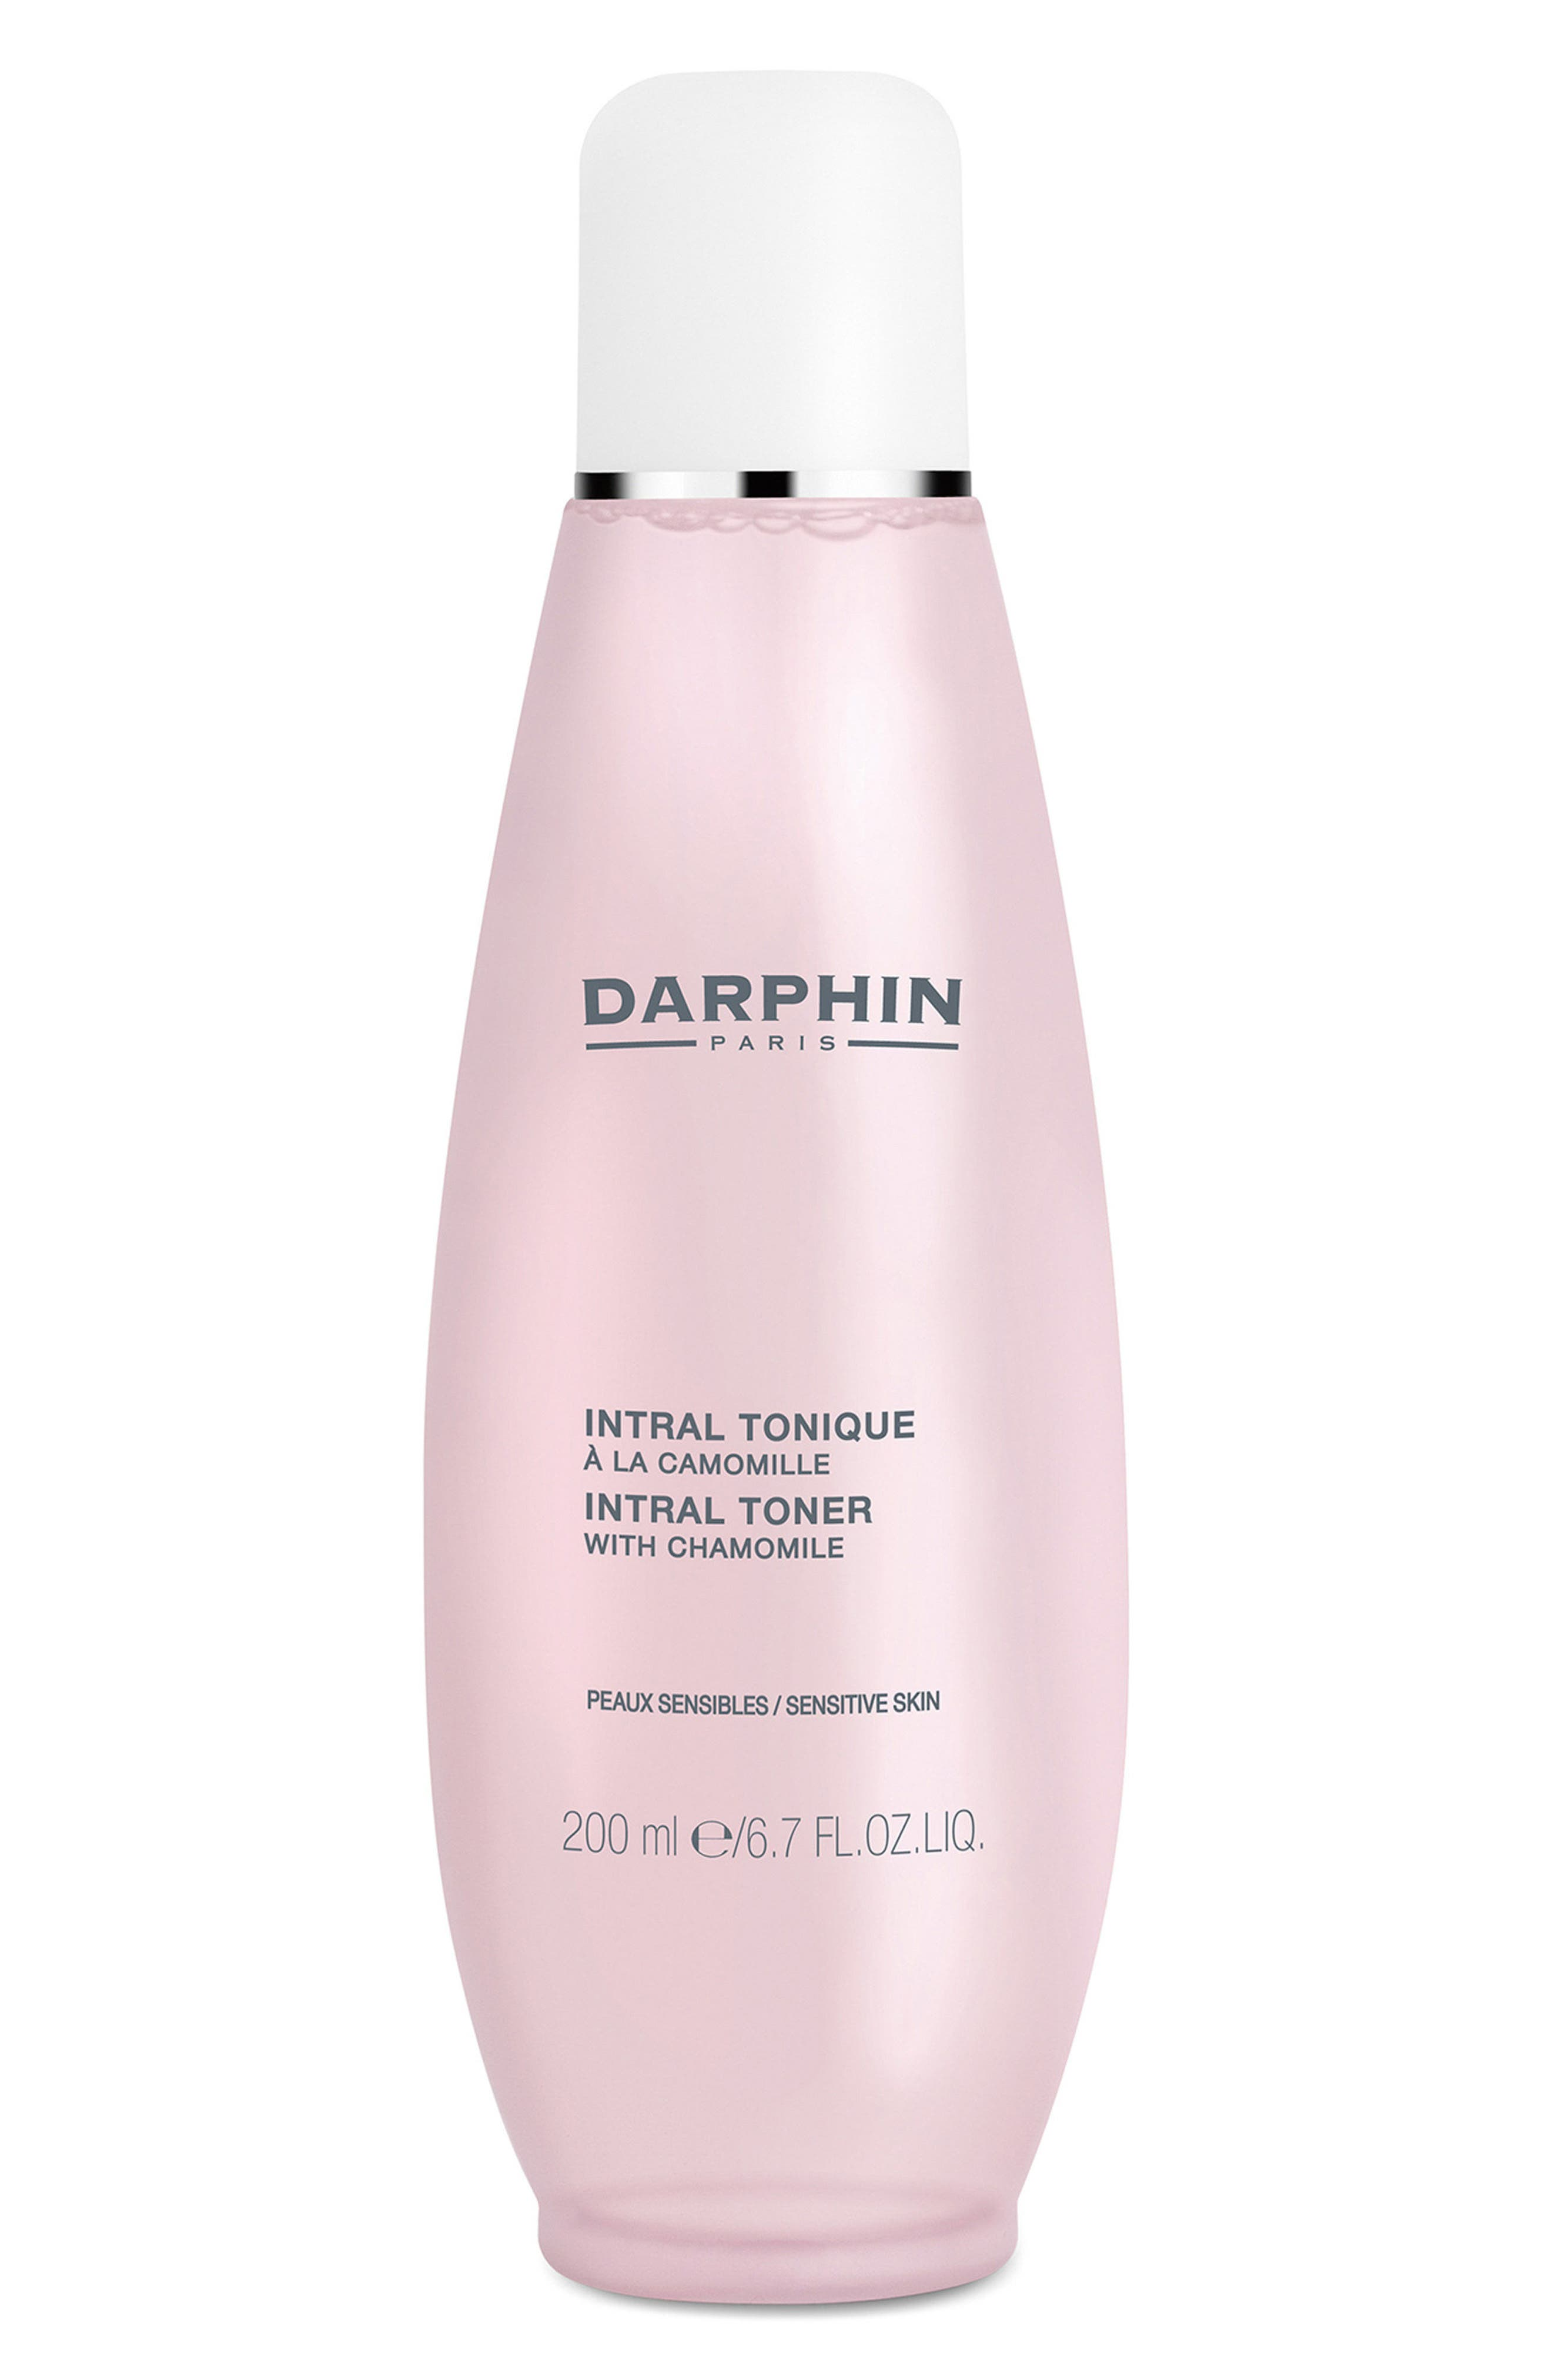 DARPHIN INTRAL TONER WITH CHAMOMILE